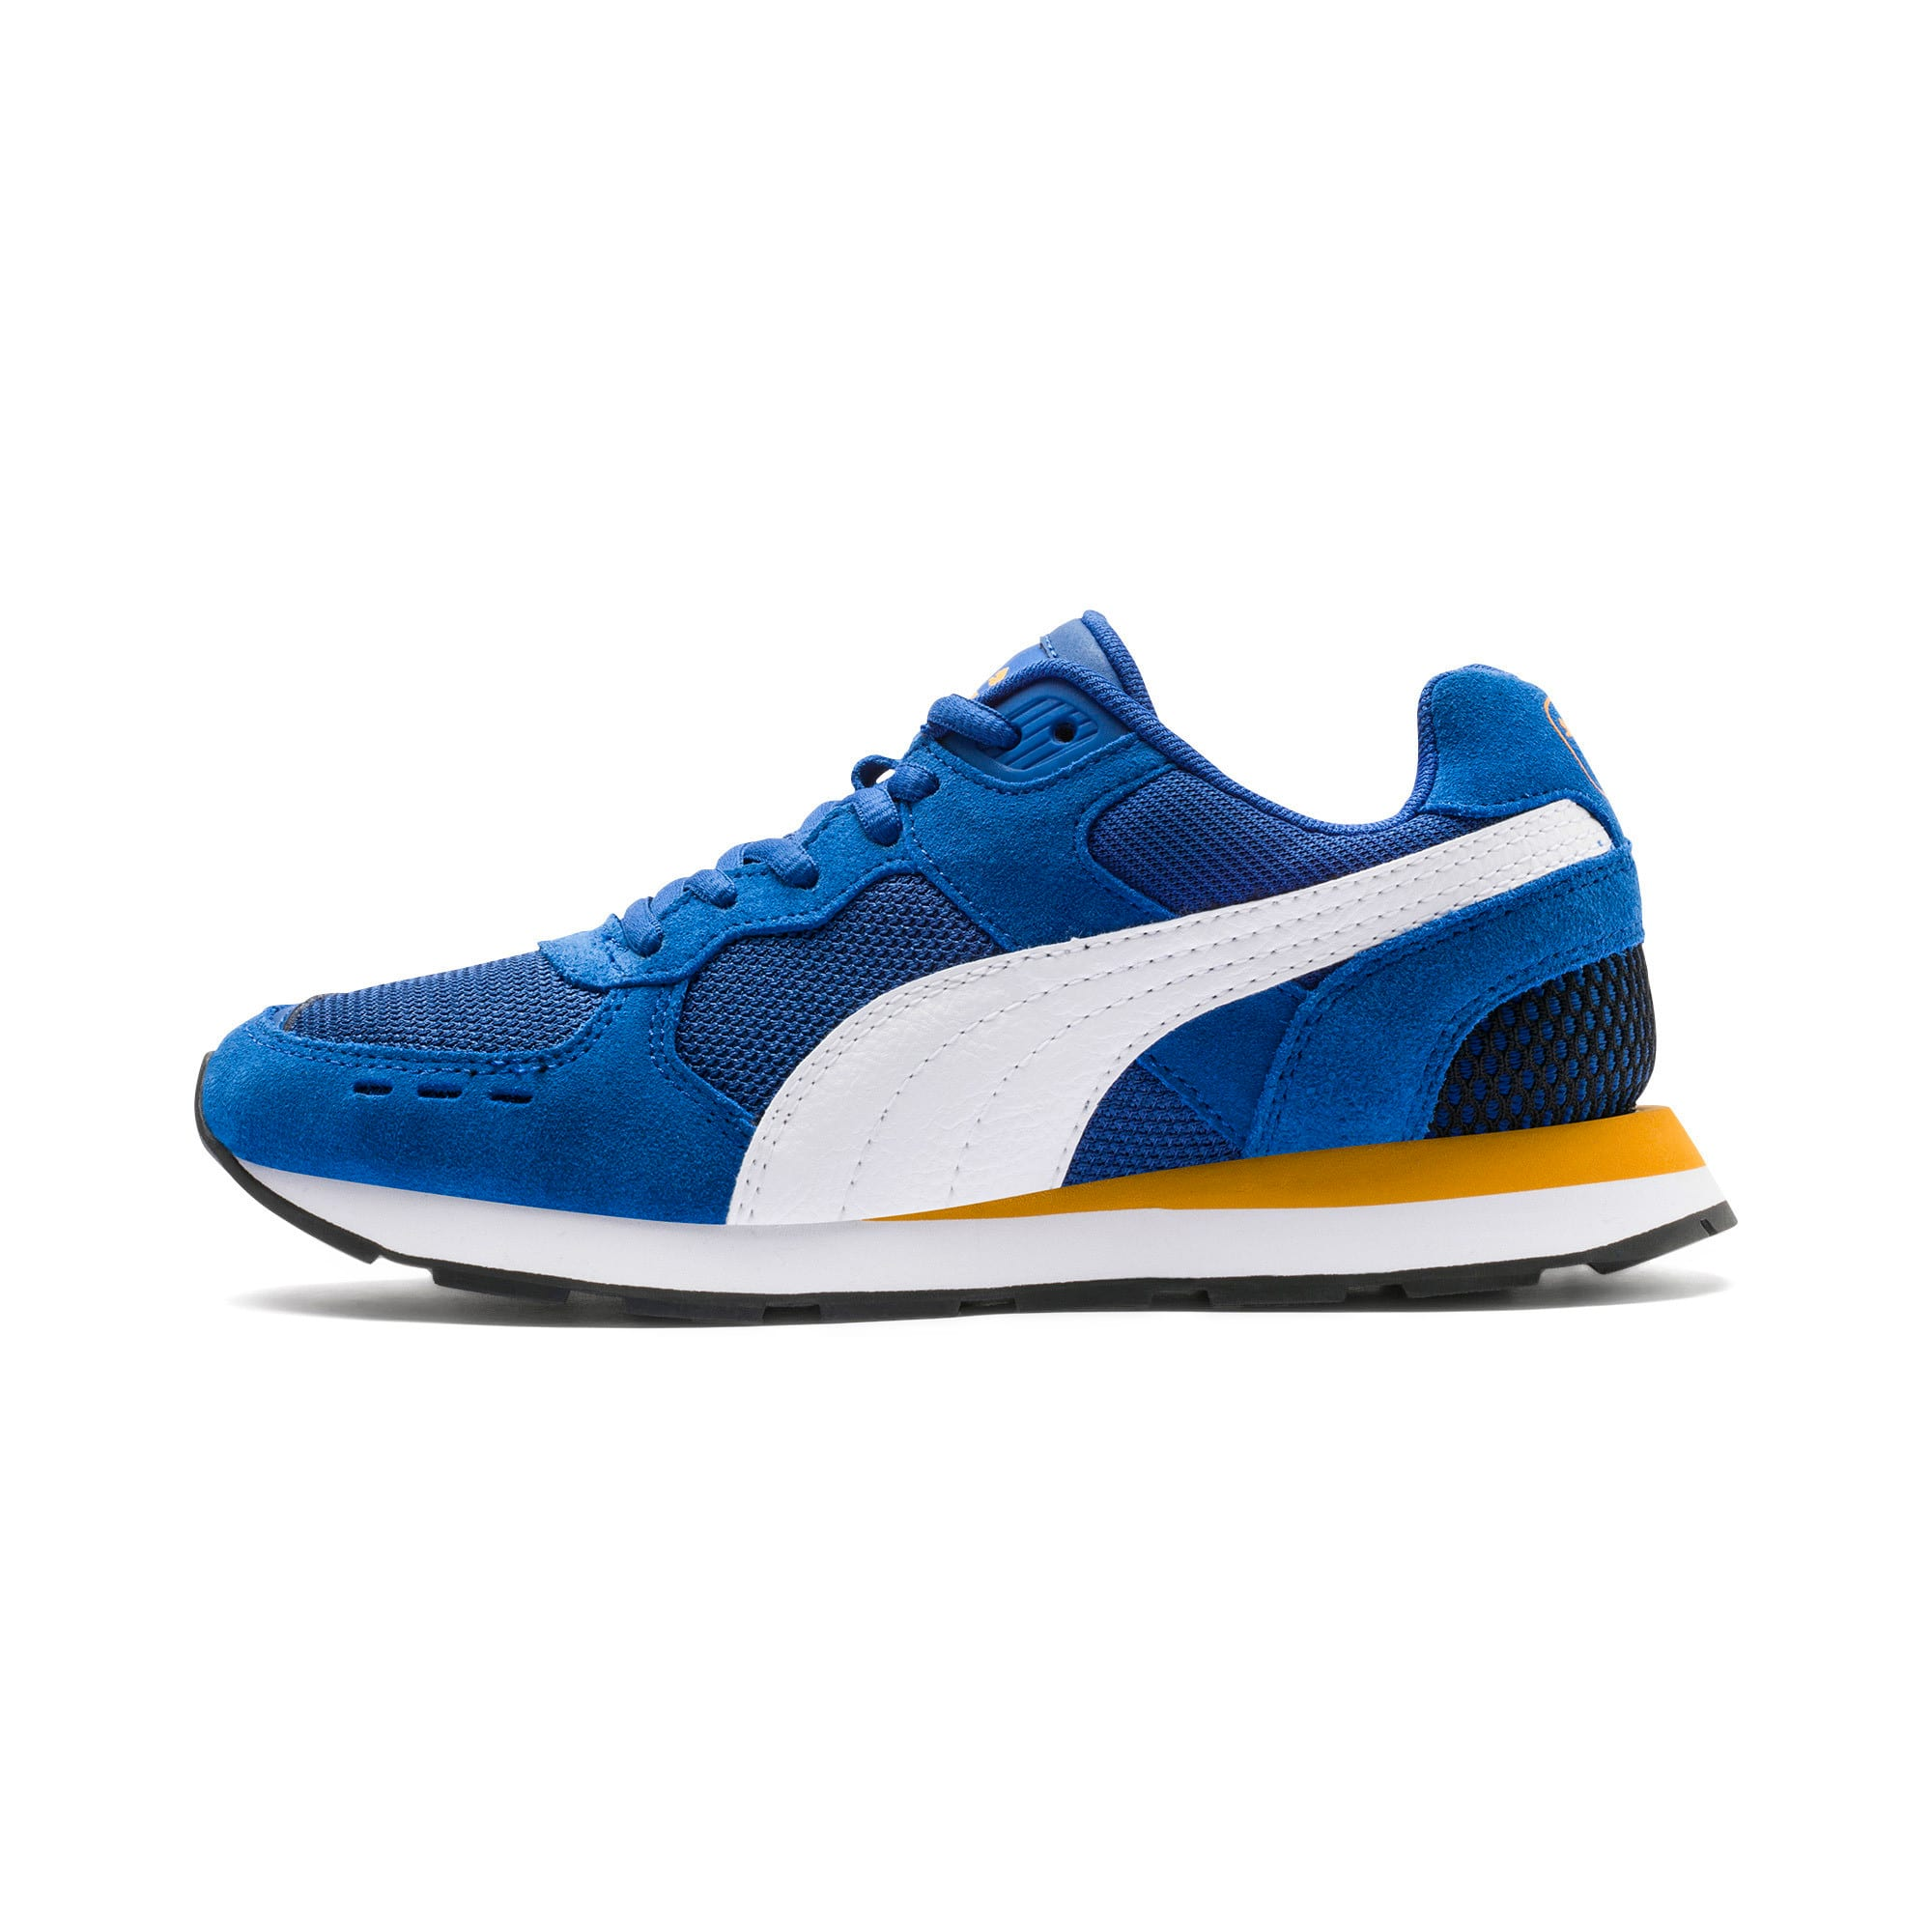 Thumbnail 1 of Vista Youth Trainers, Galaxy Blue-Puma White, medium-IND